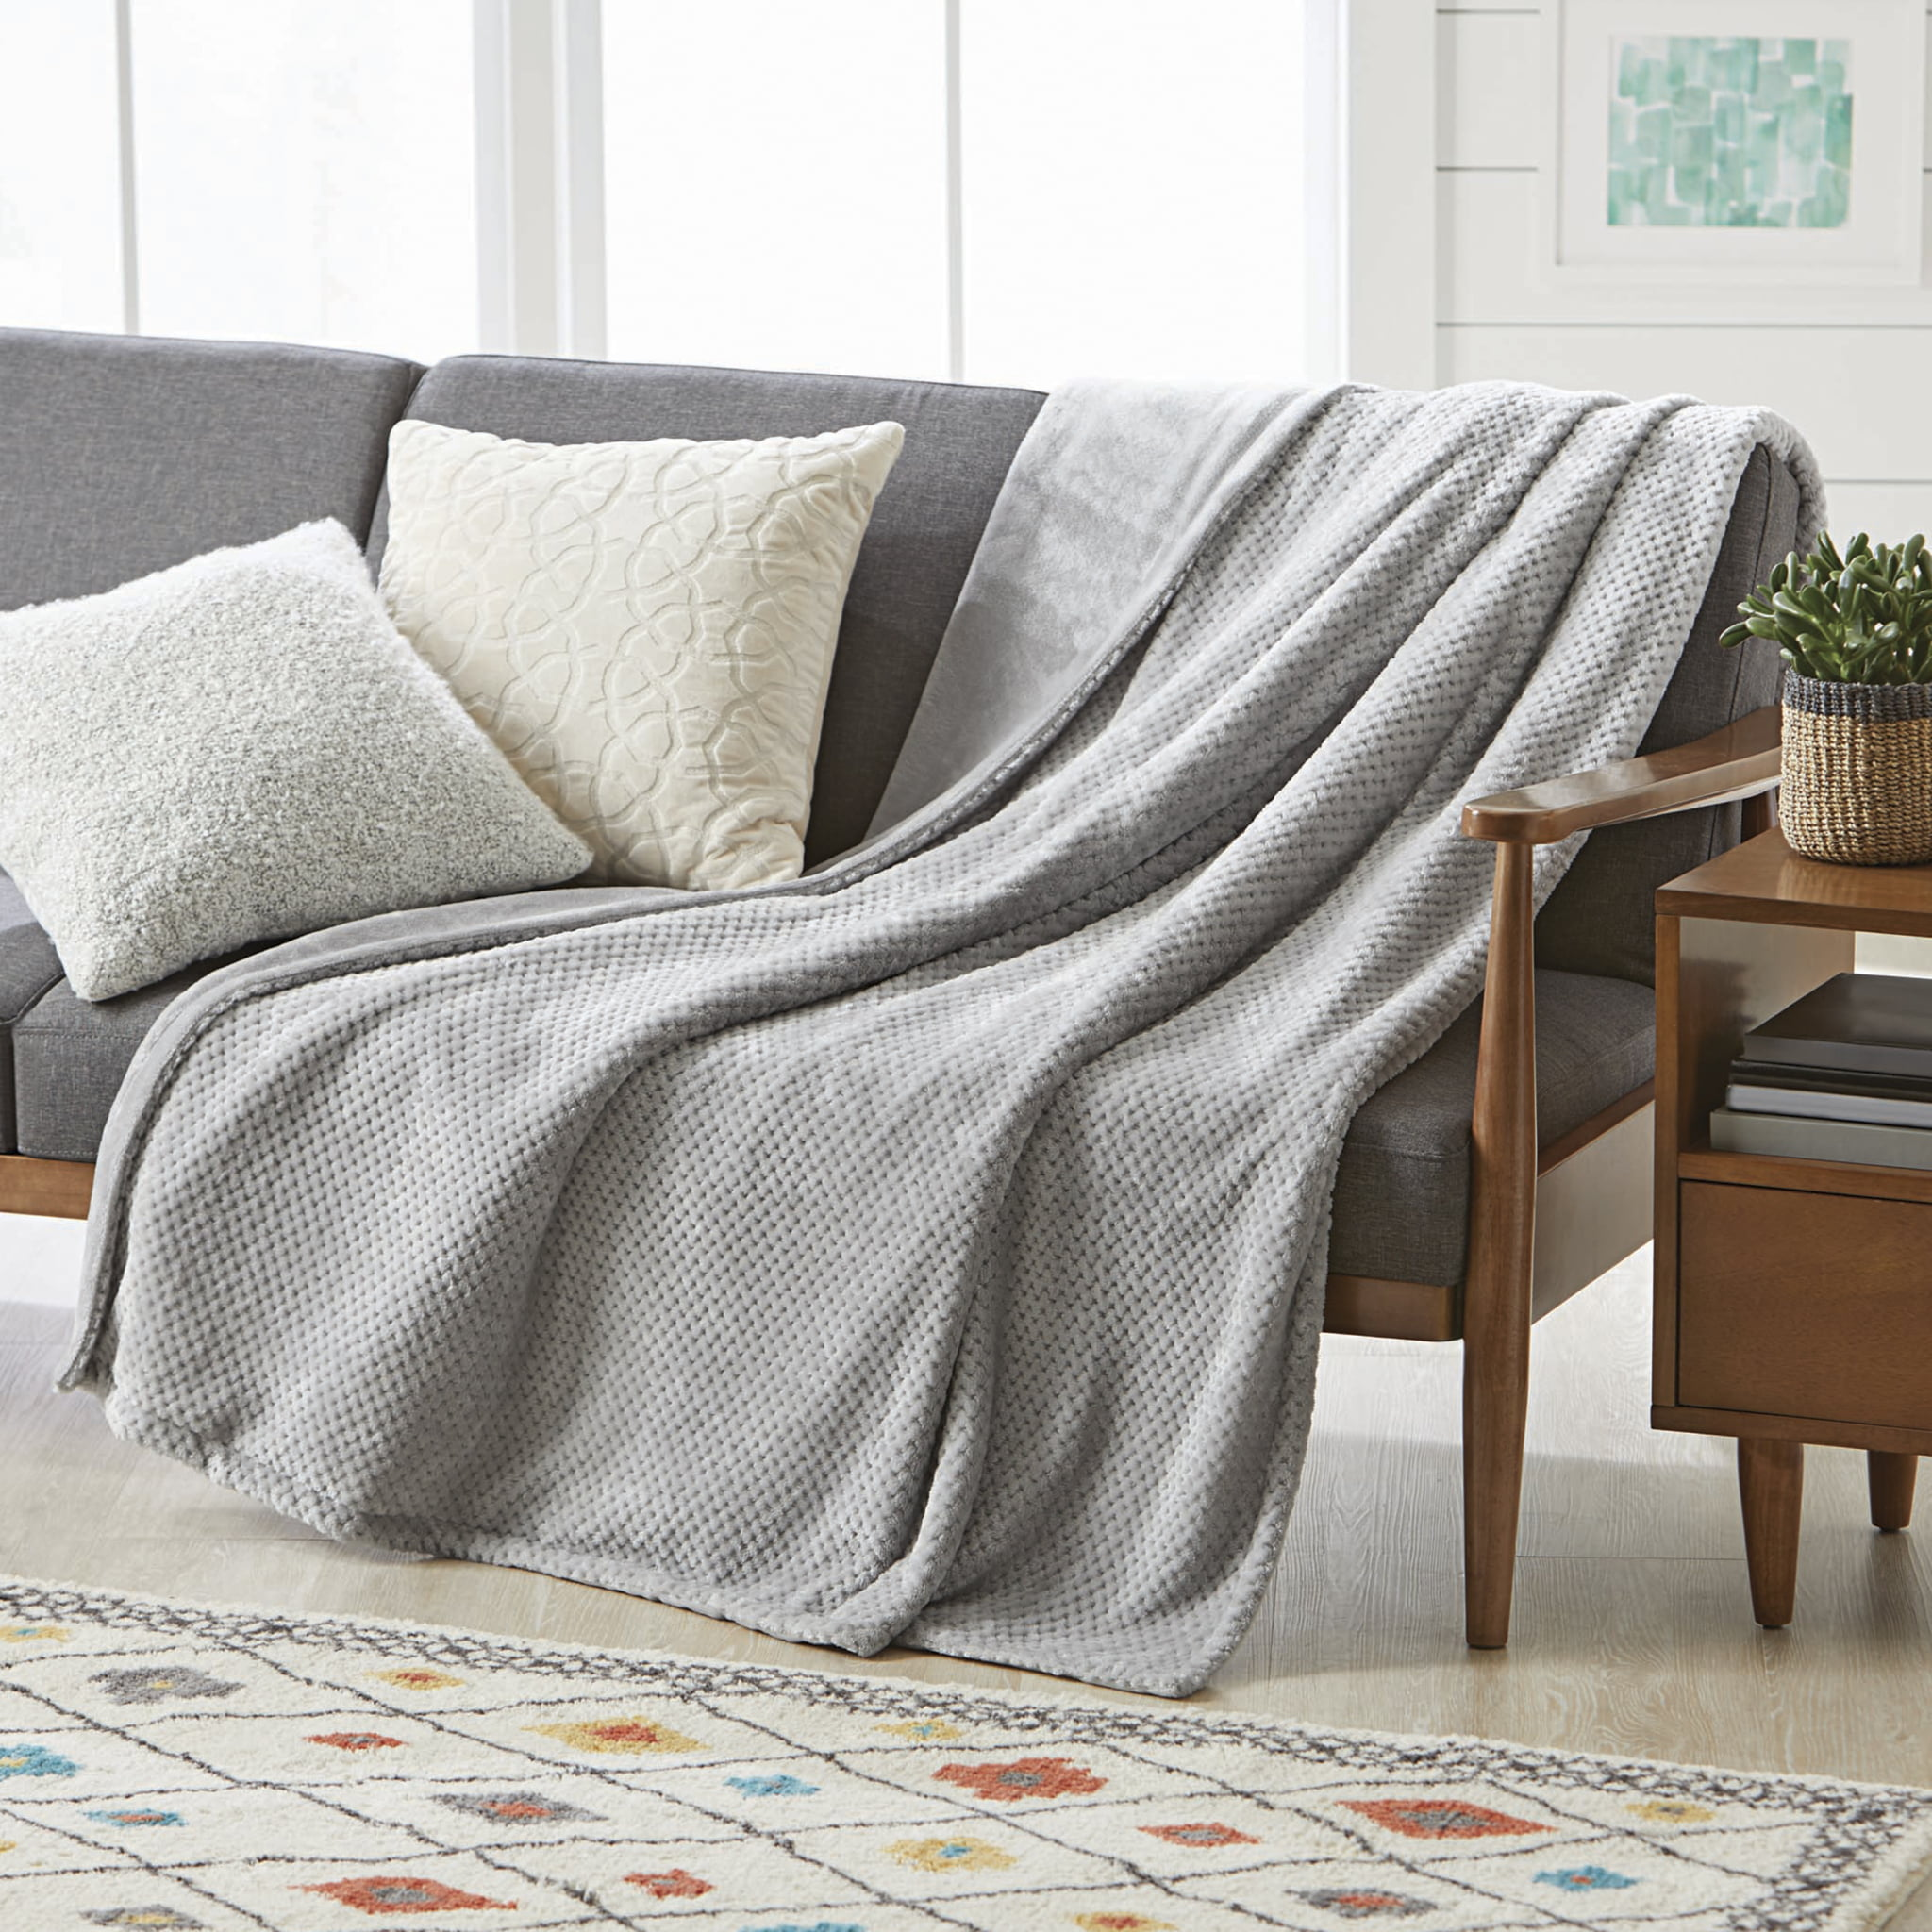 Better Homes Gardens Velvet Plush 50 X 70 Oversized Reversible Light Grey Throw Blanket 1 Each